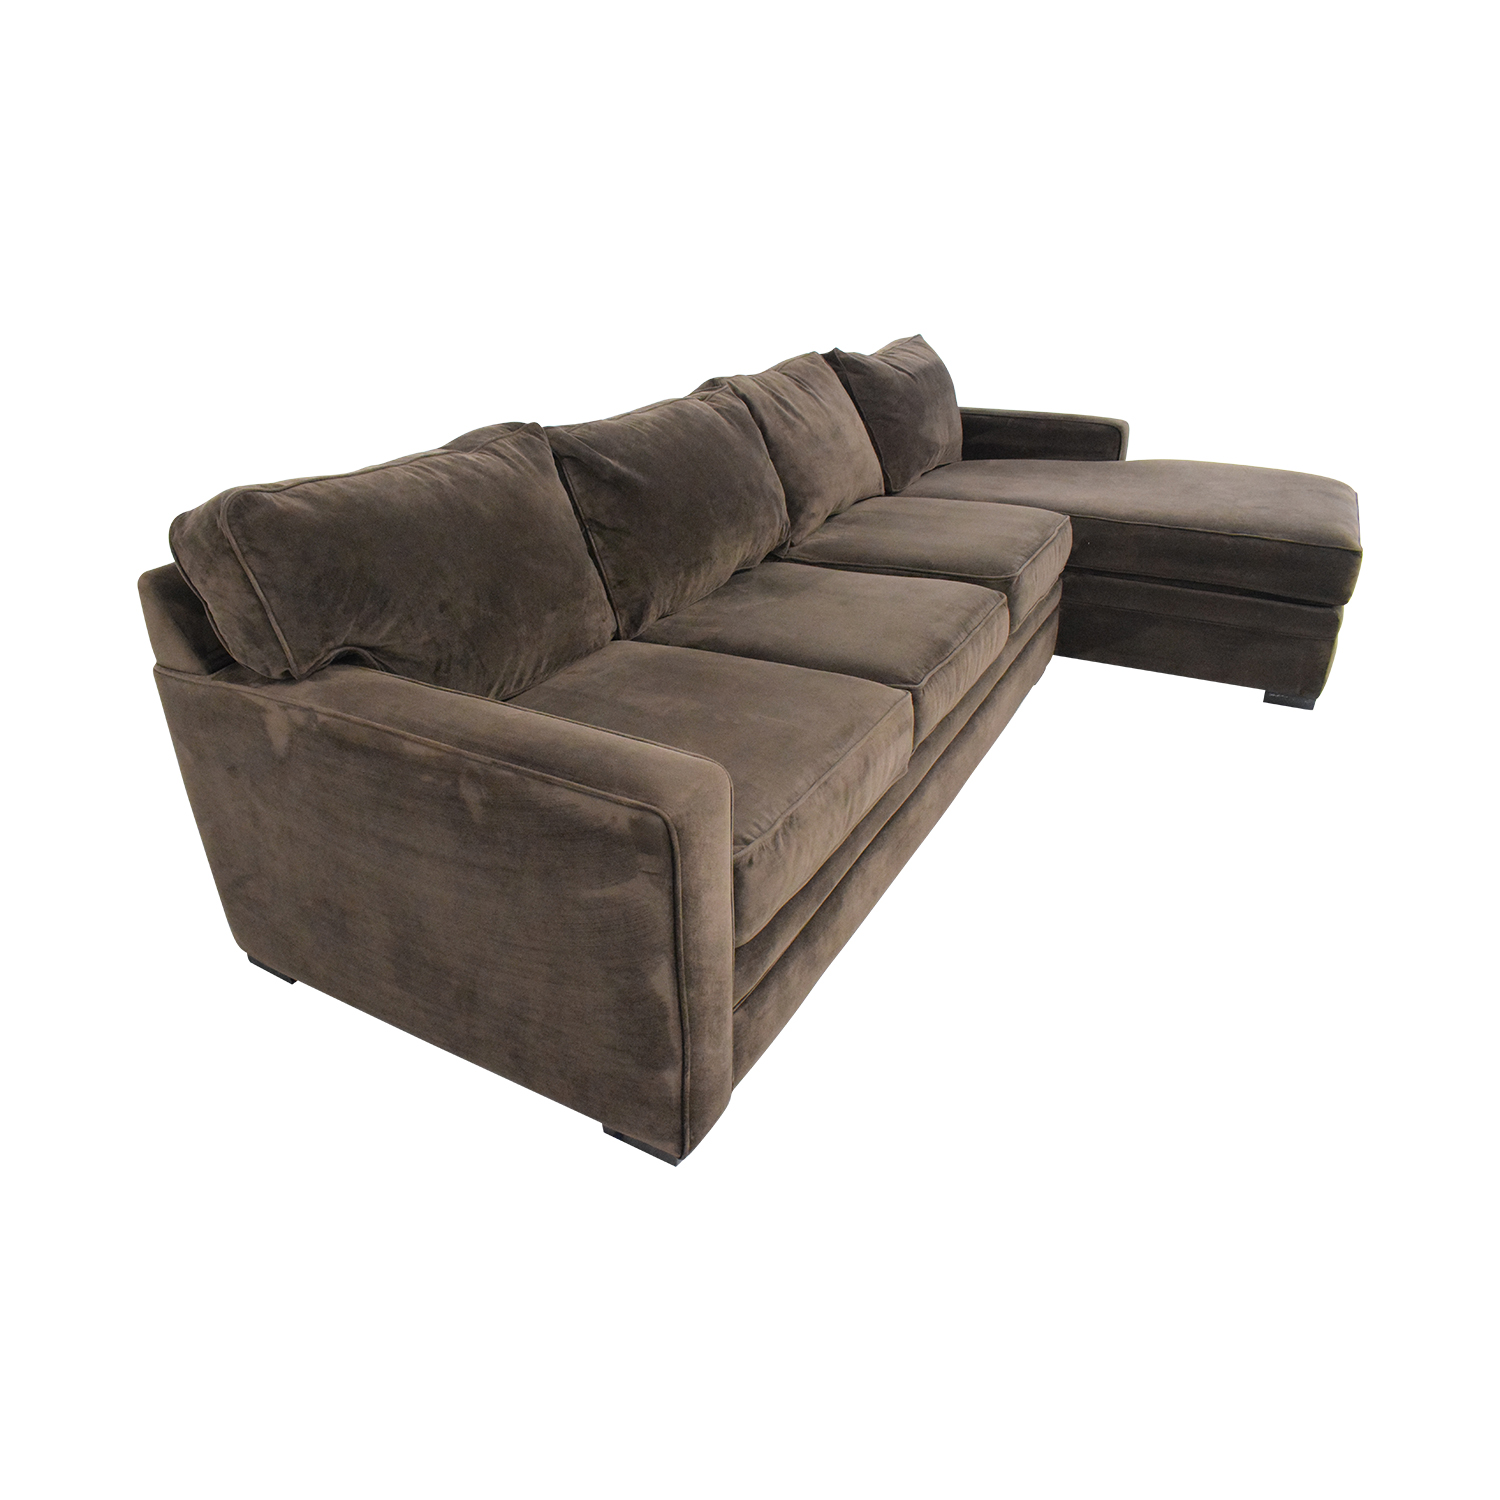 Star Furniture Star Furniture Juno Raf Sectional Sofa with Chaise price